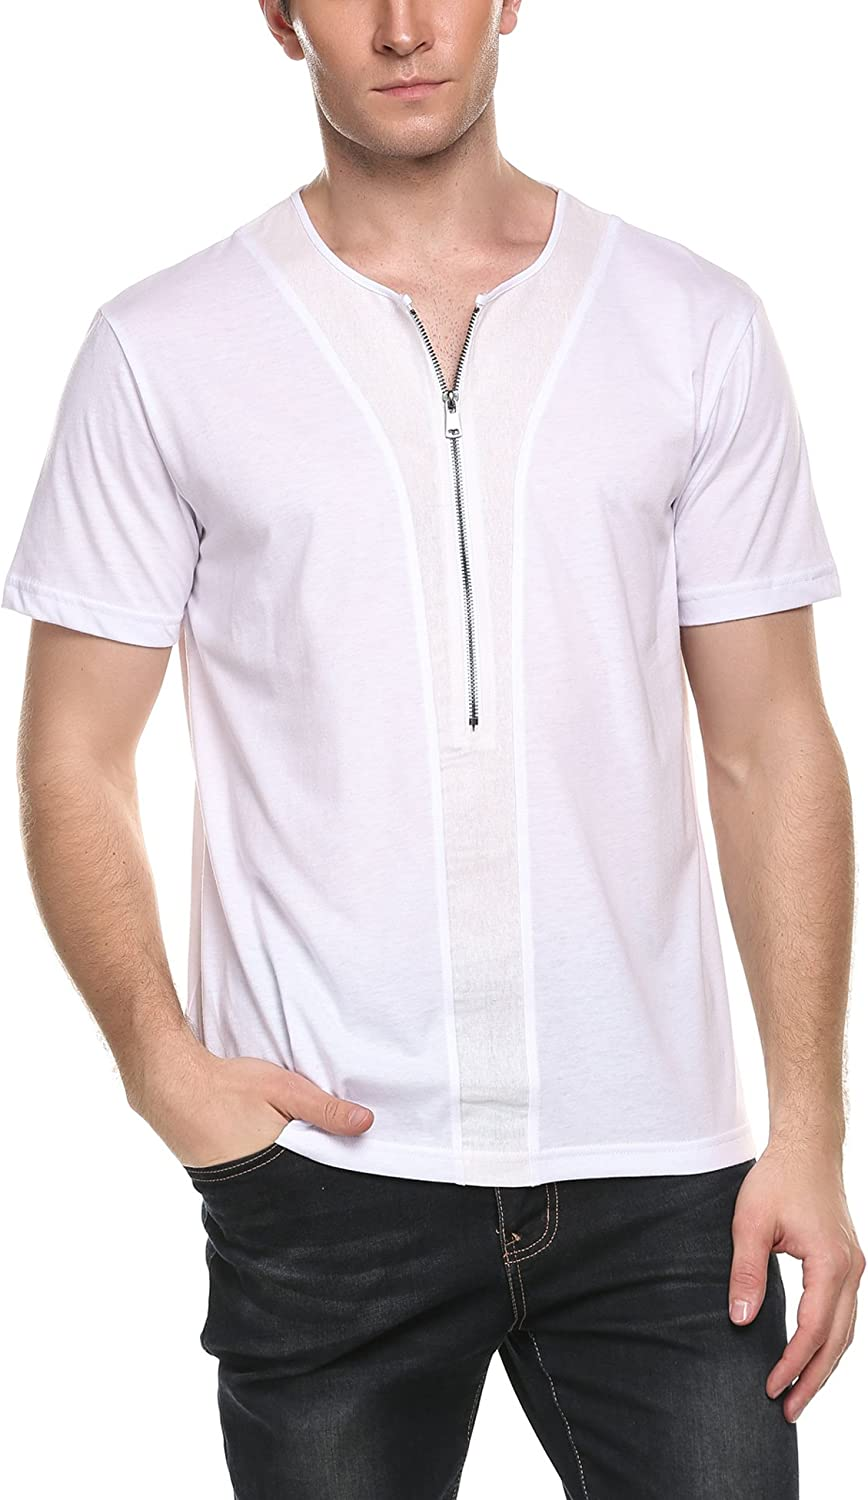 Mens Fashion Zip-up Shirt Slim Fit Contrast Short Sleeve Casual with Pocket T-Shirt